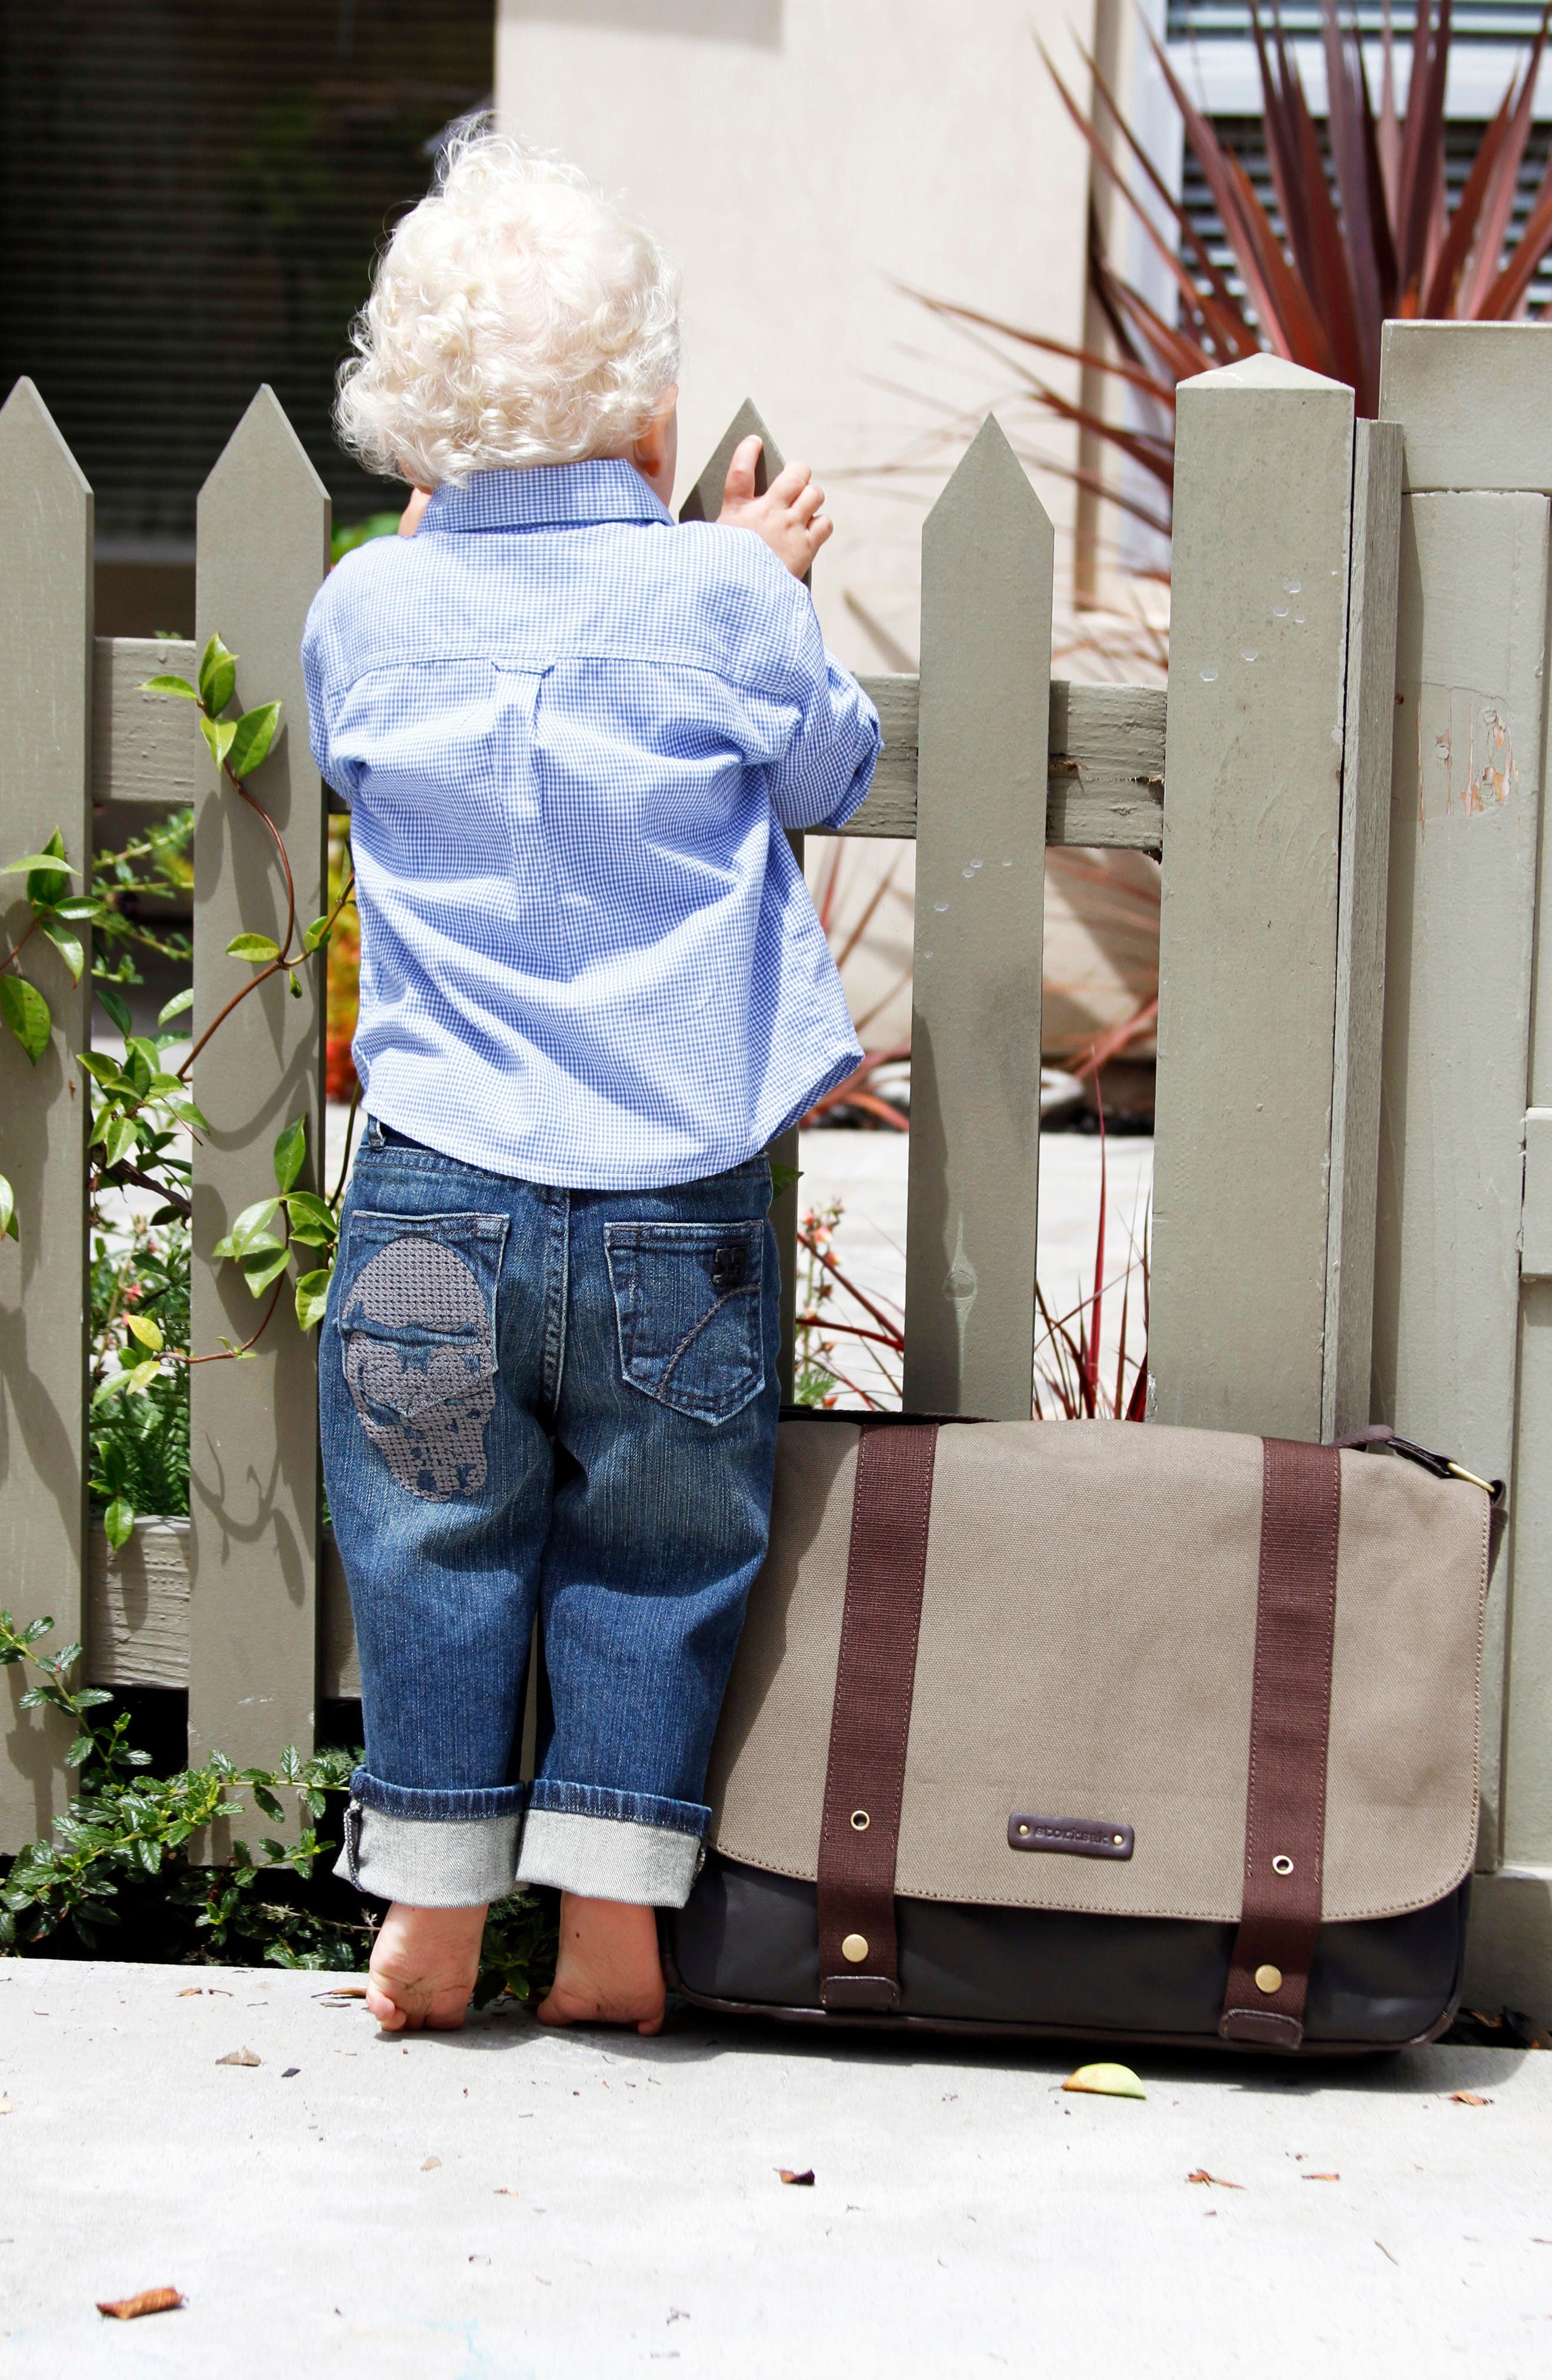 Alternate Image 3  - Storksak 'Aubrey' Diaper Bag